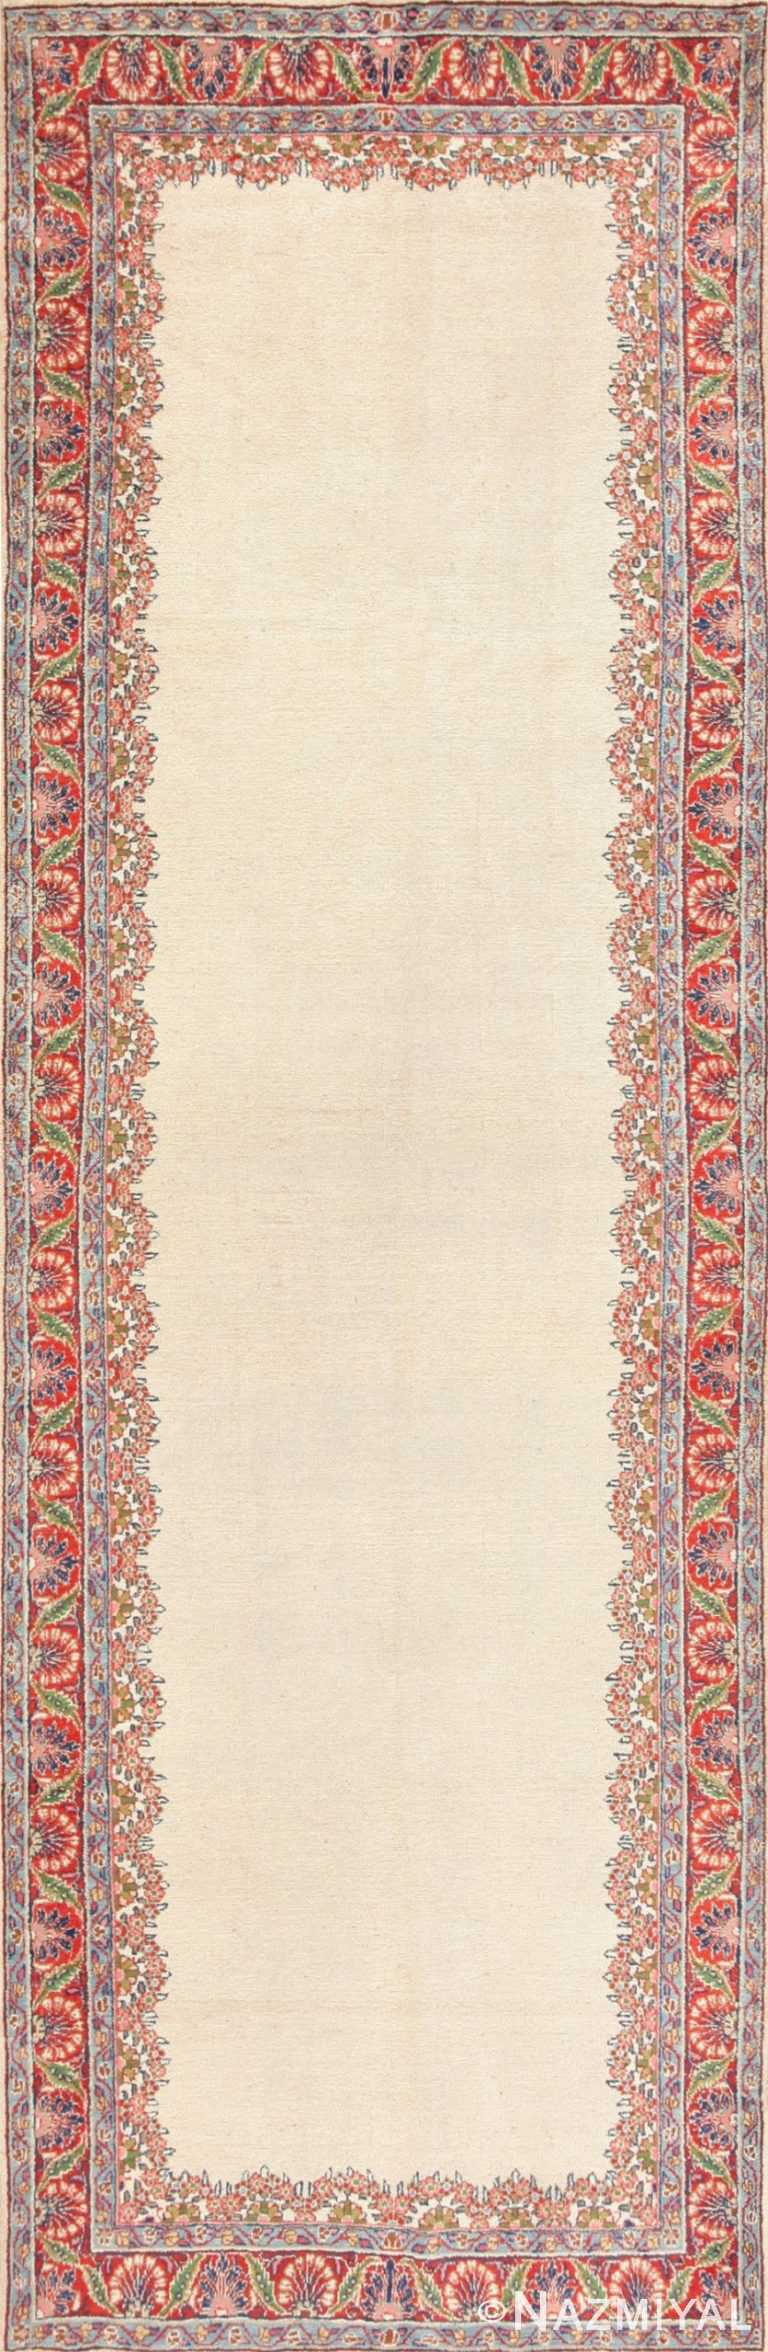 Antique Persian Mahal Carpet 47298 Detail/Large View